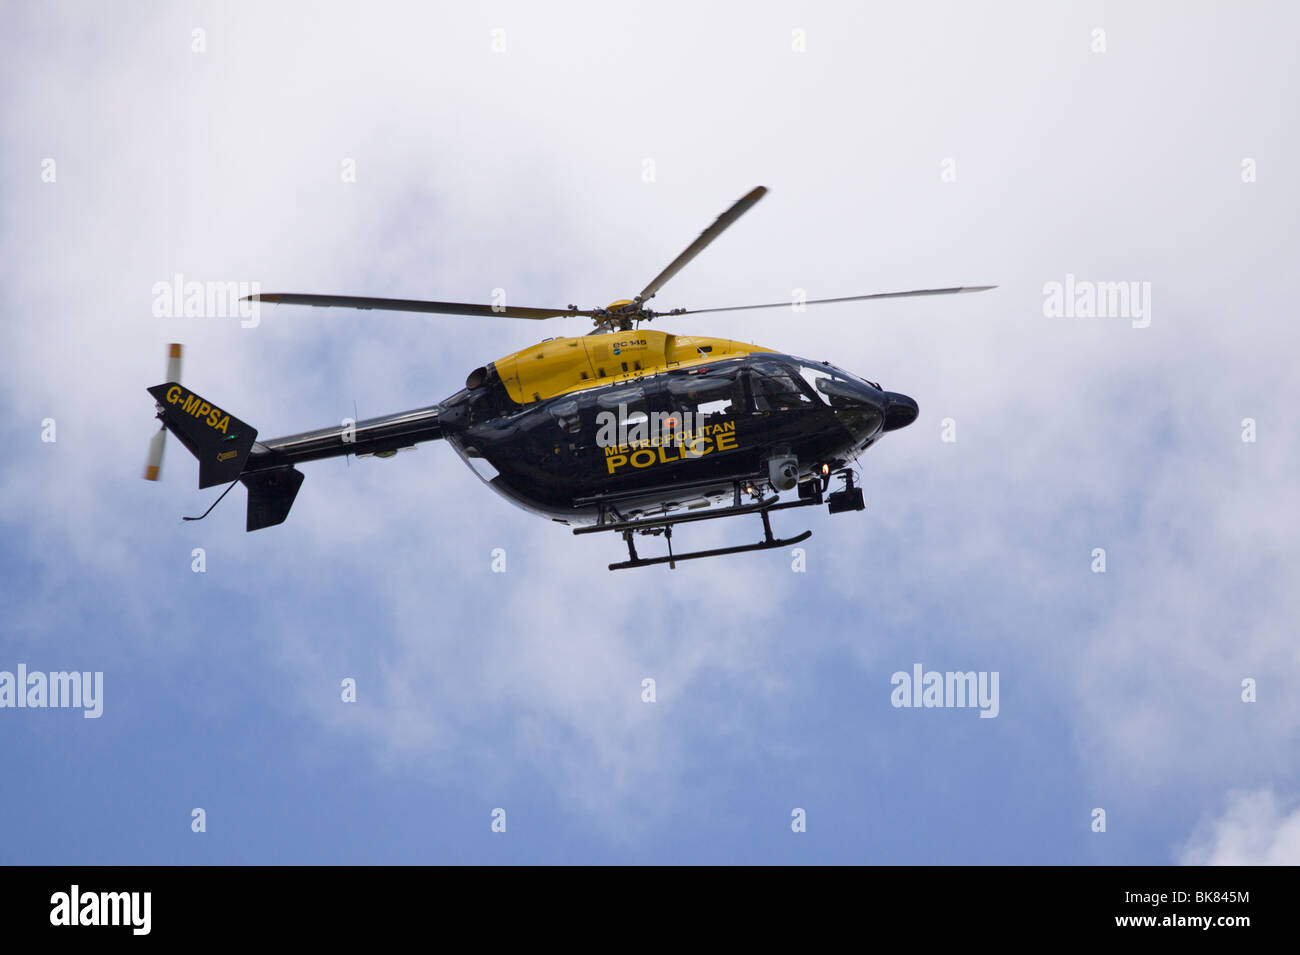 Blue and yellow Metropolitan Police Service (MPS) Eurocopter